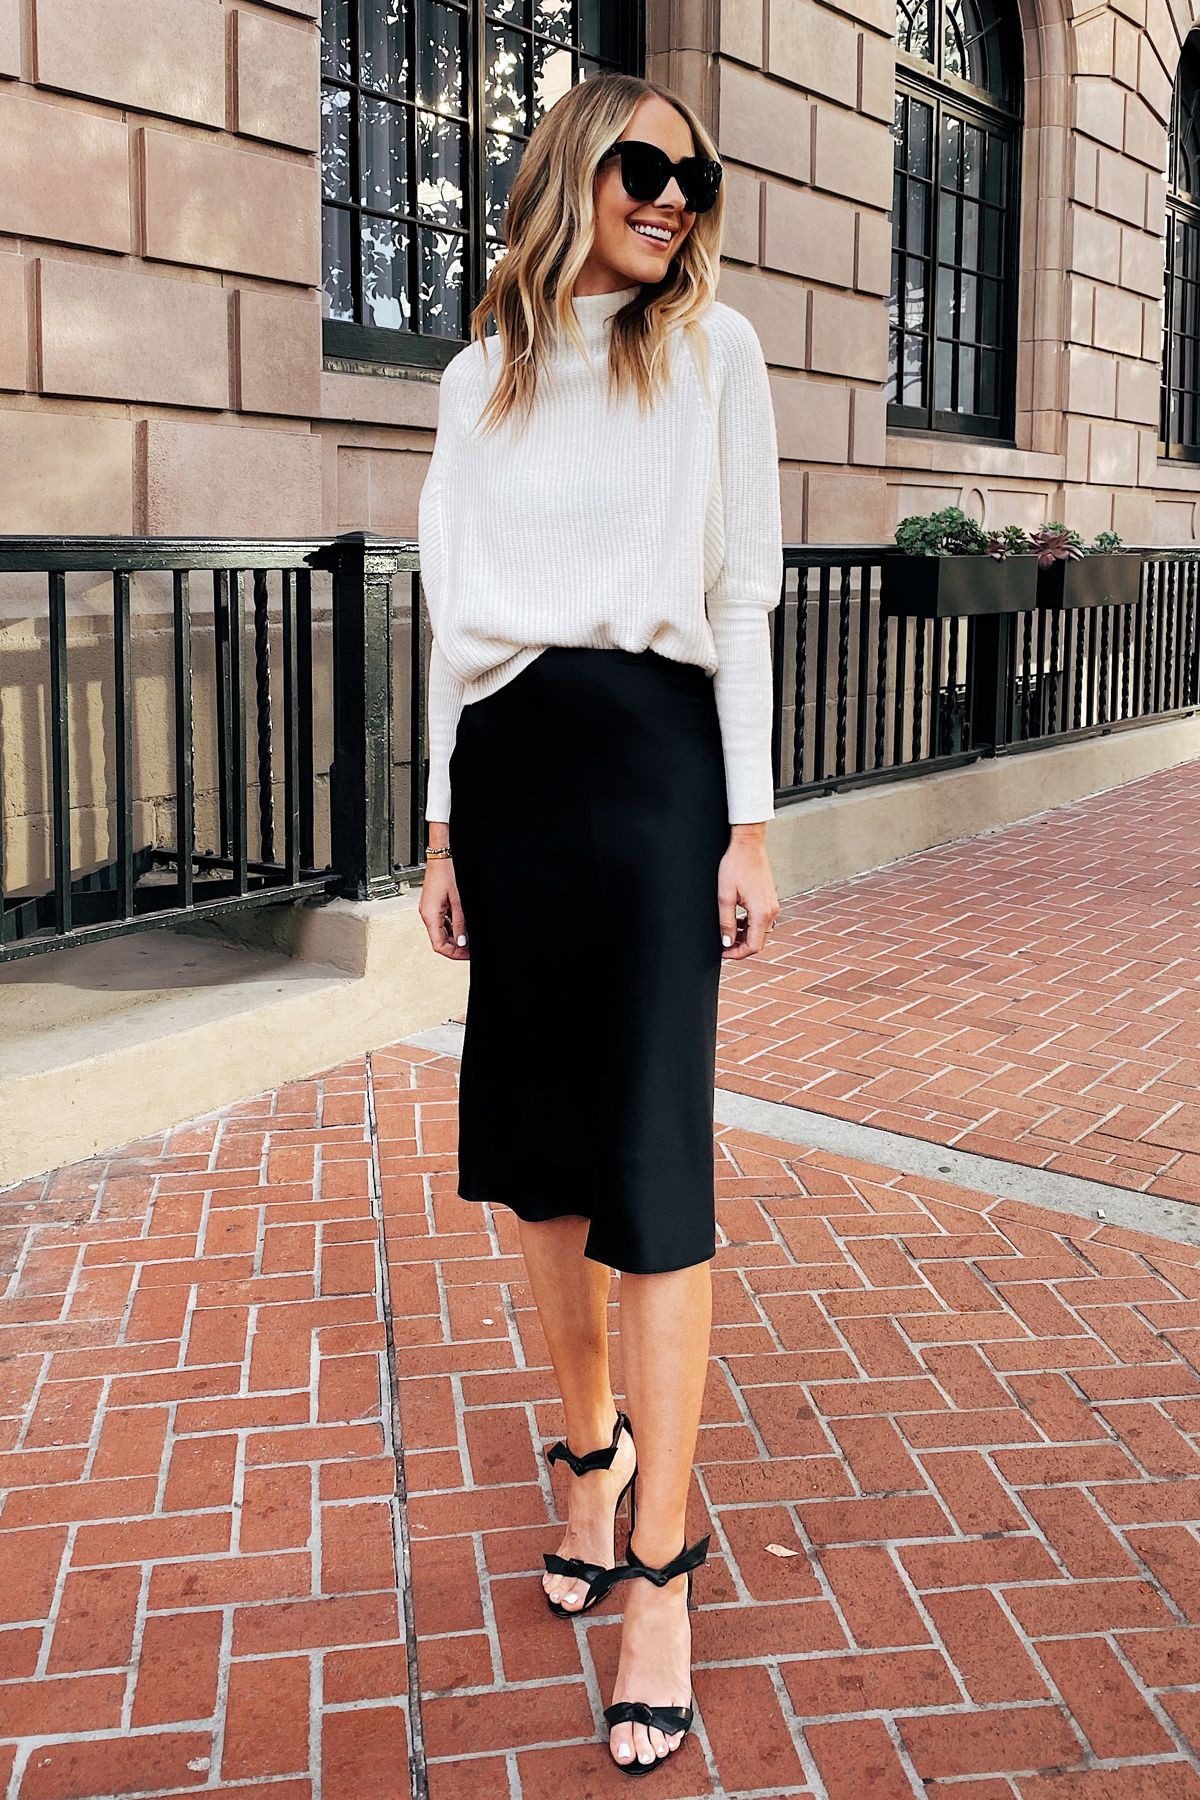 Black and white outfit ideas with pencil skirt, shirt, skirt